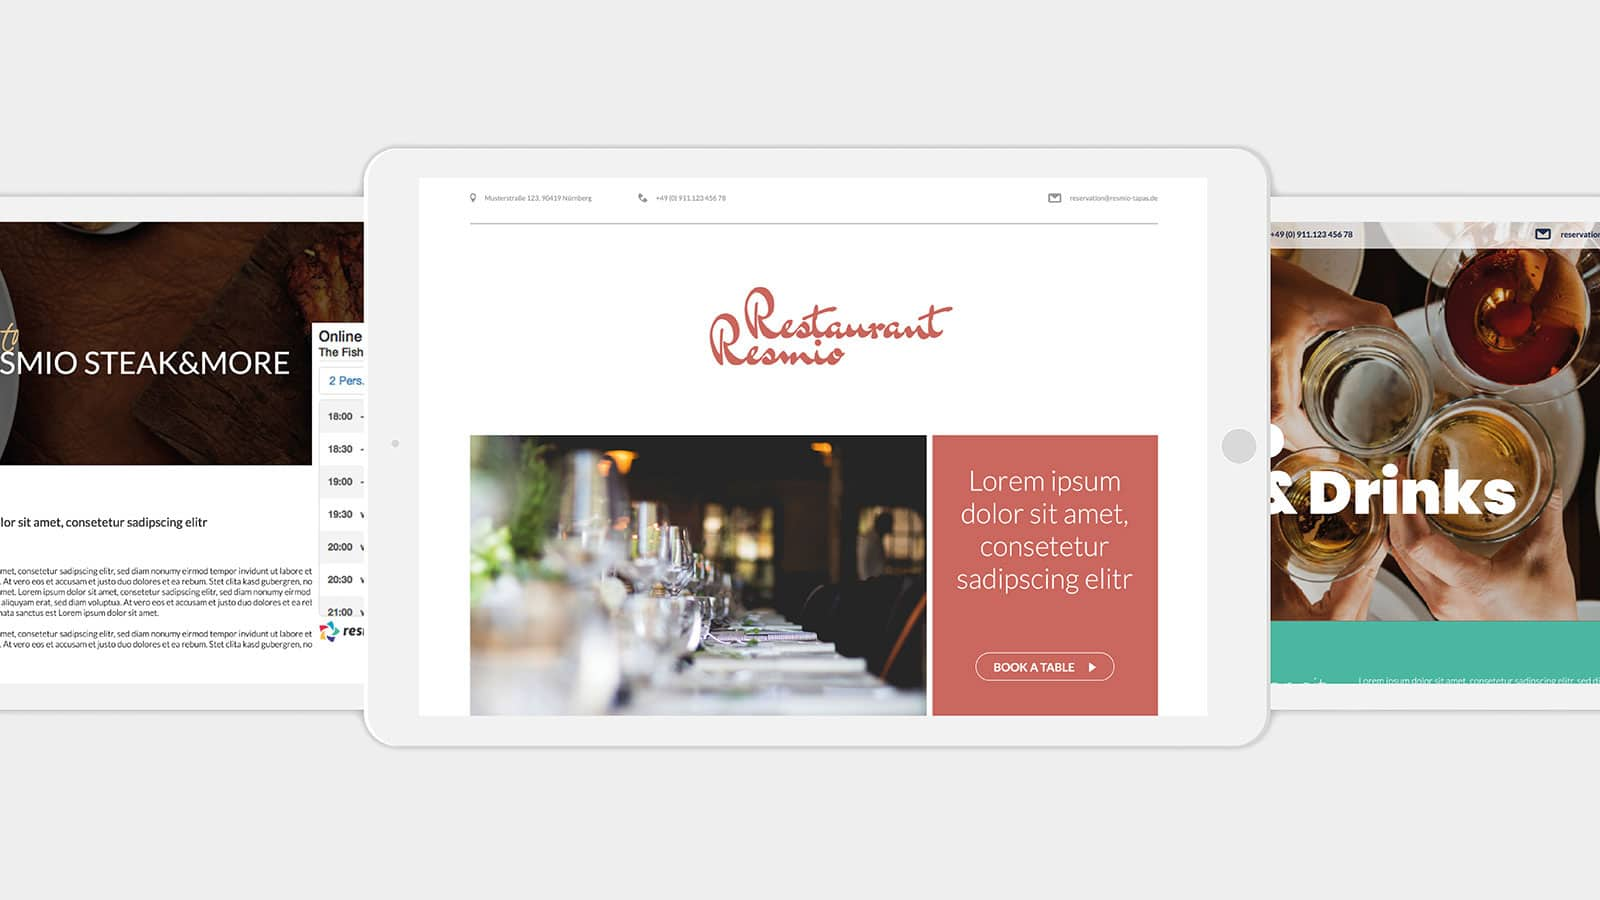 resmio free website dining design demo